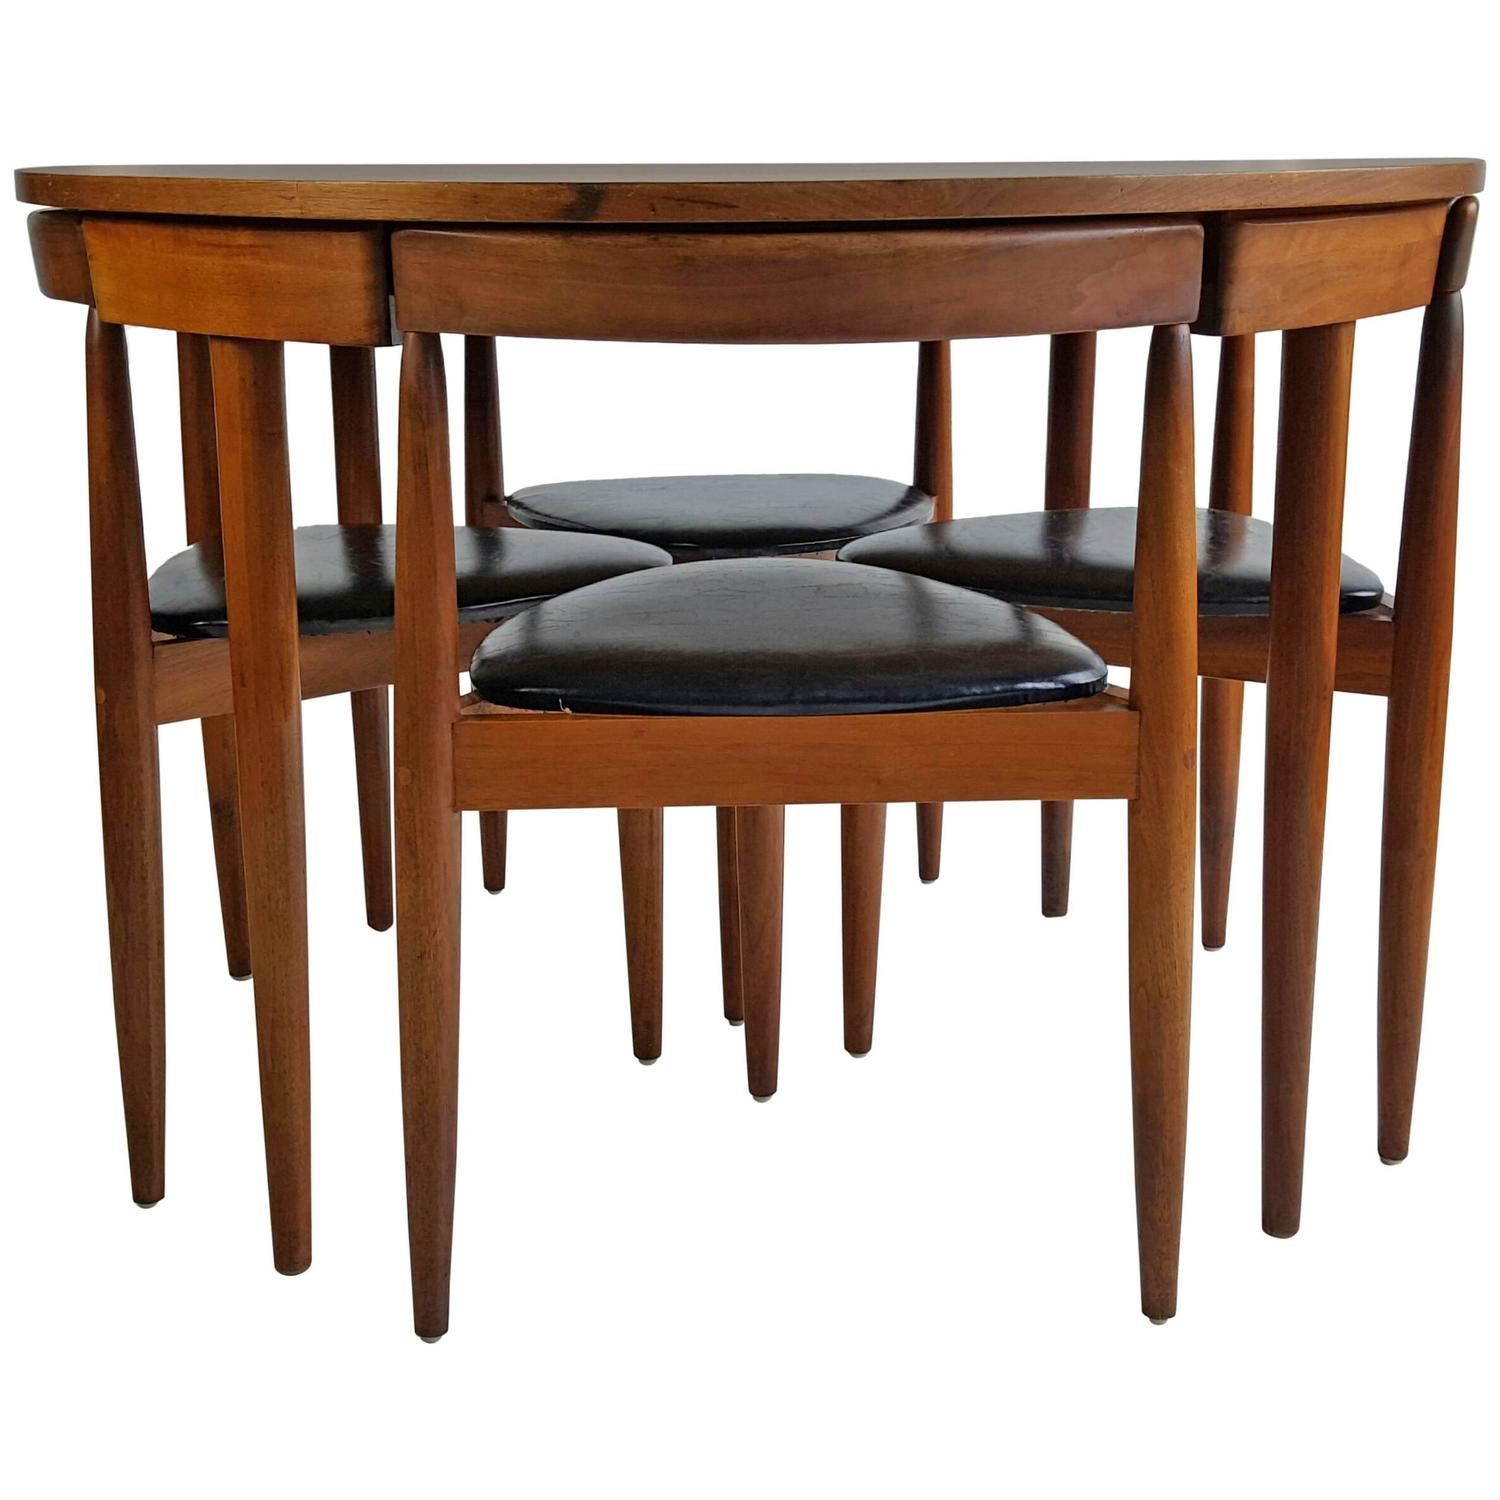 mid century modern dining table four chairs hans olsen frem rojle at